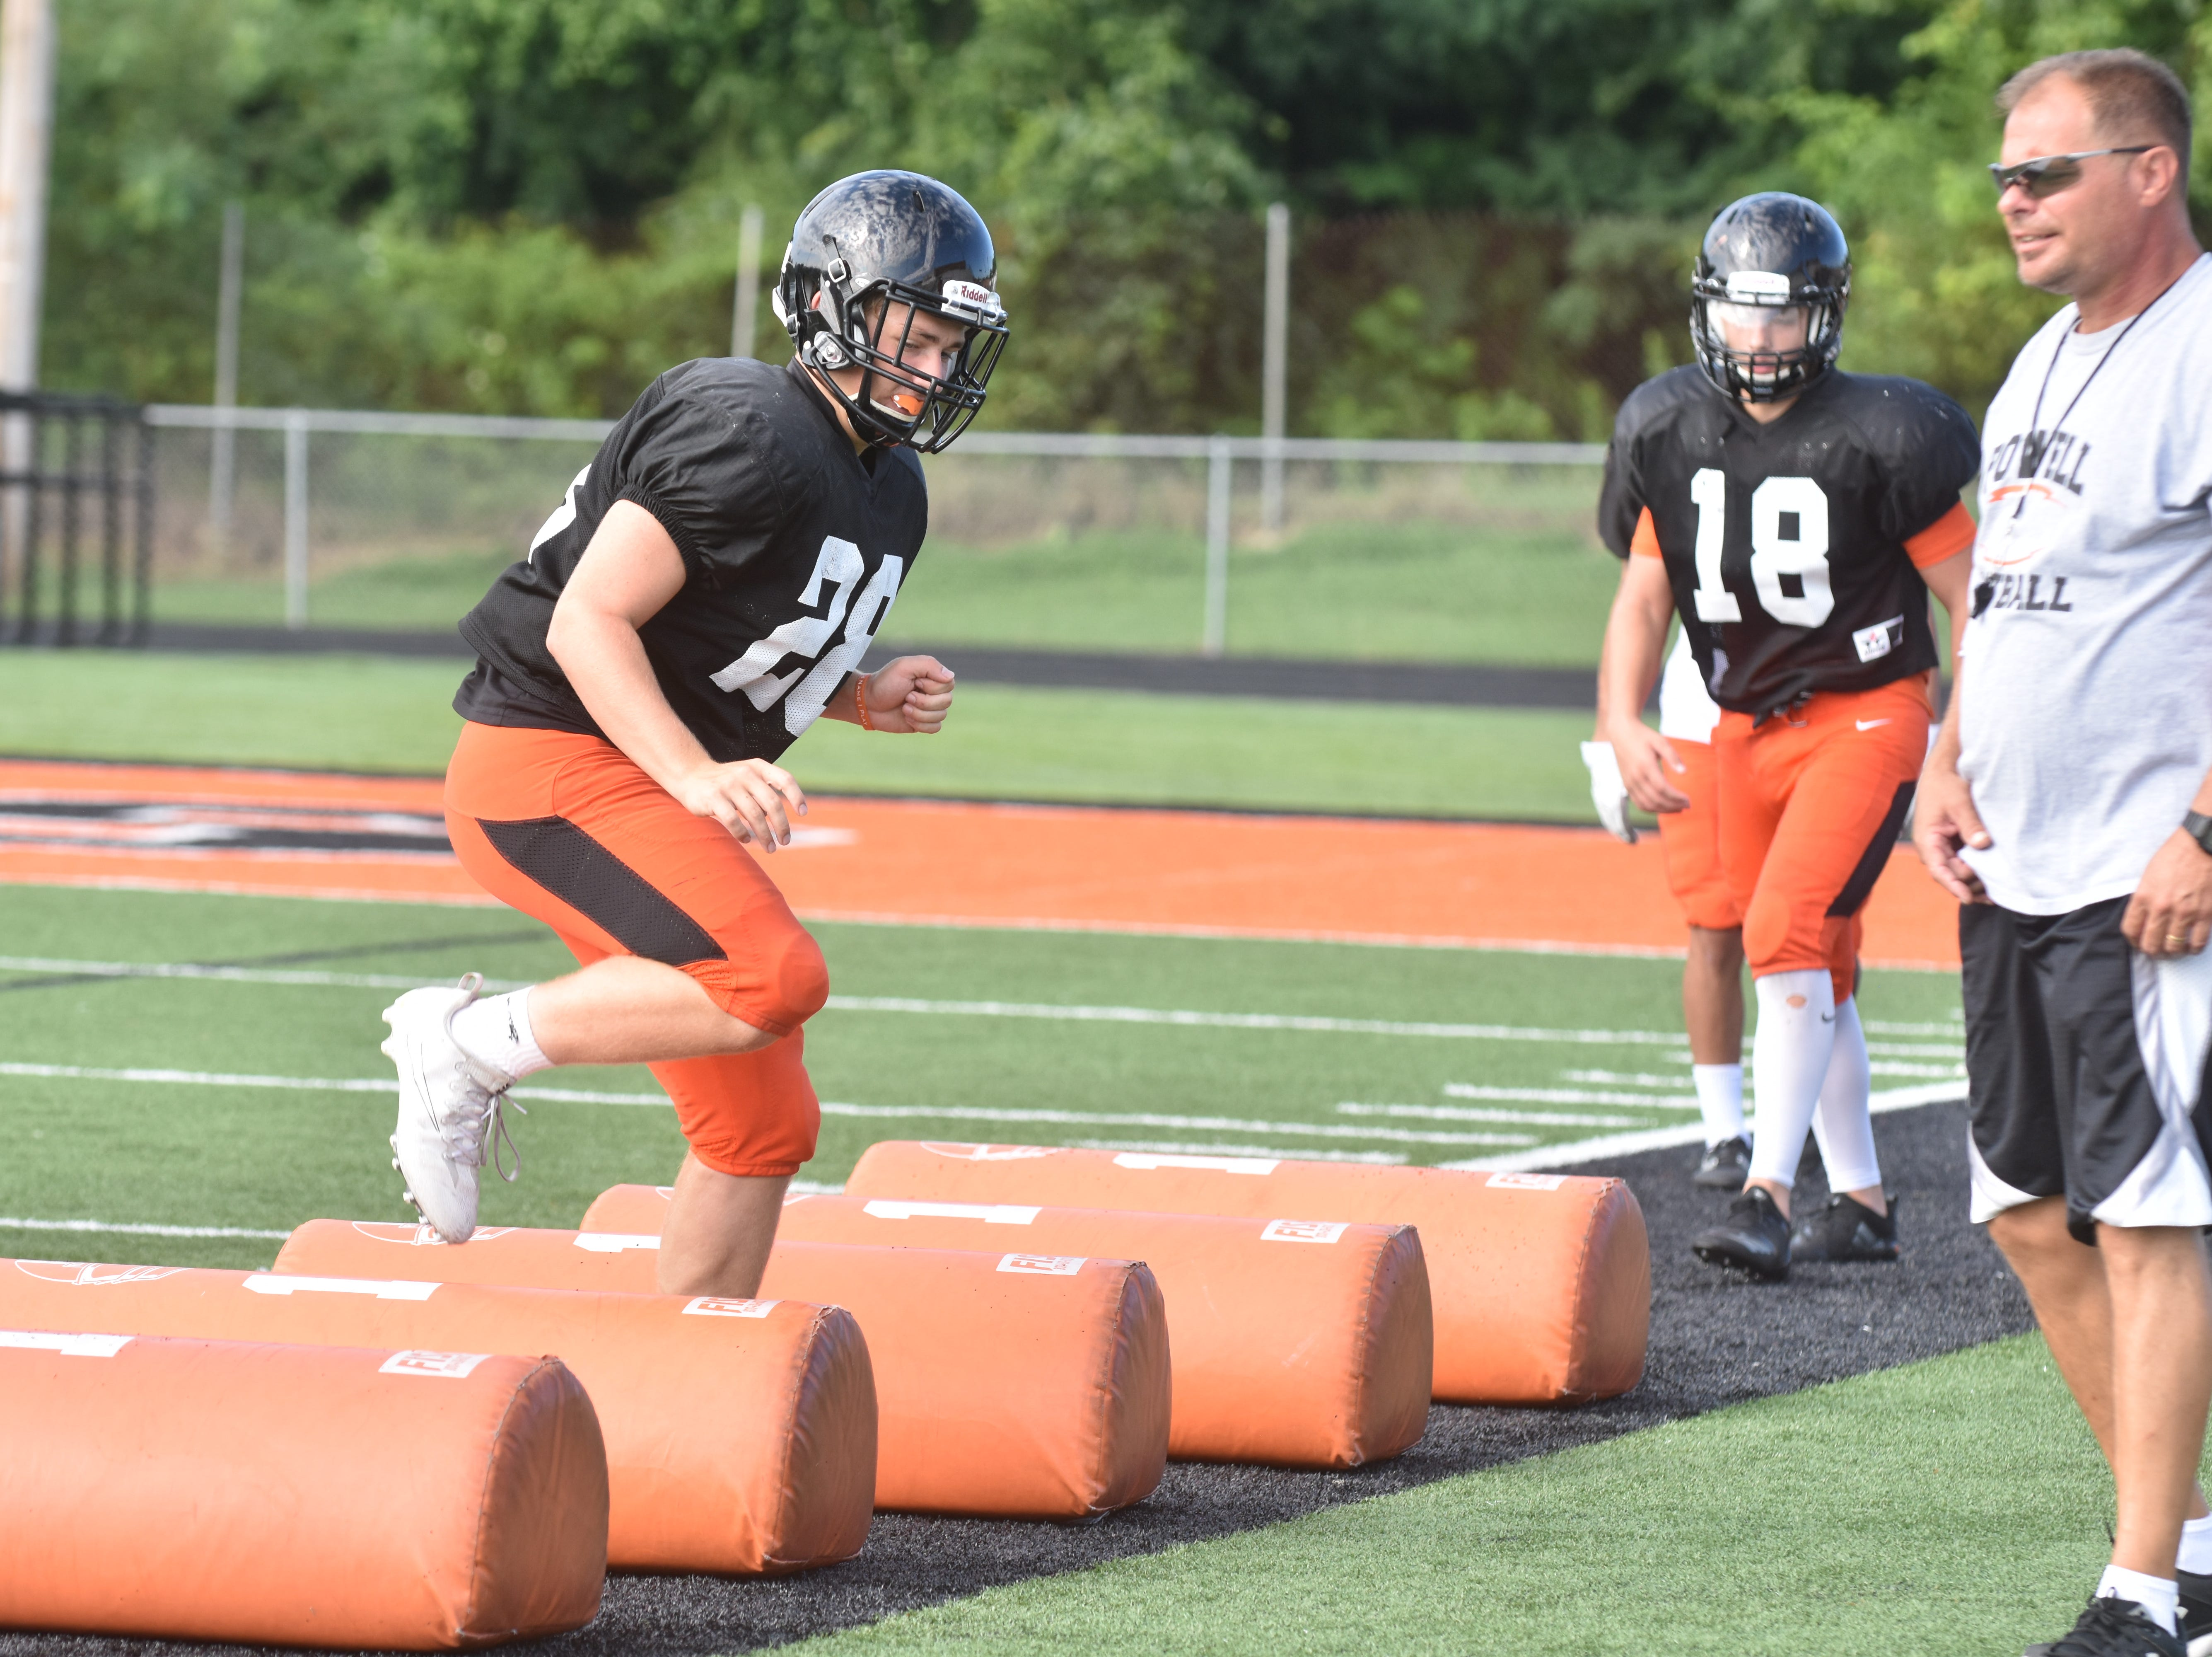 Powell football team members run through drills under the close supervision of the coaching staff during practices.